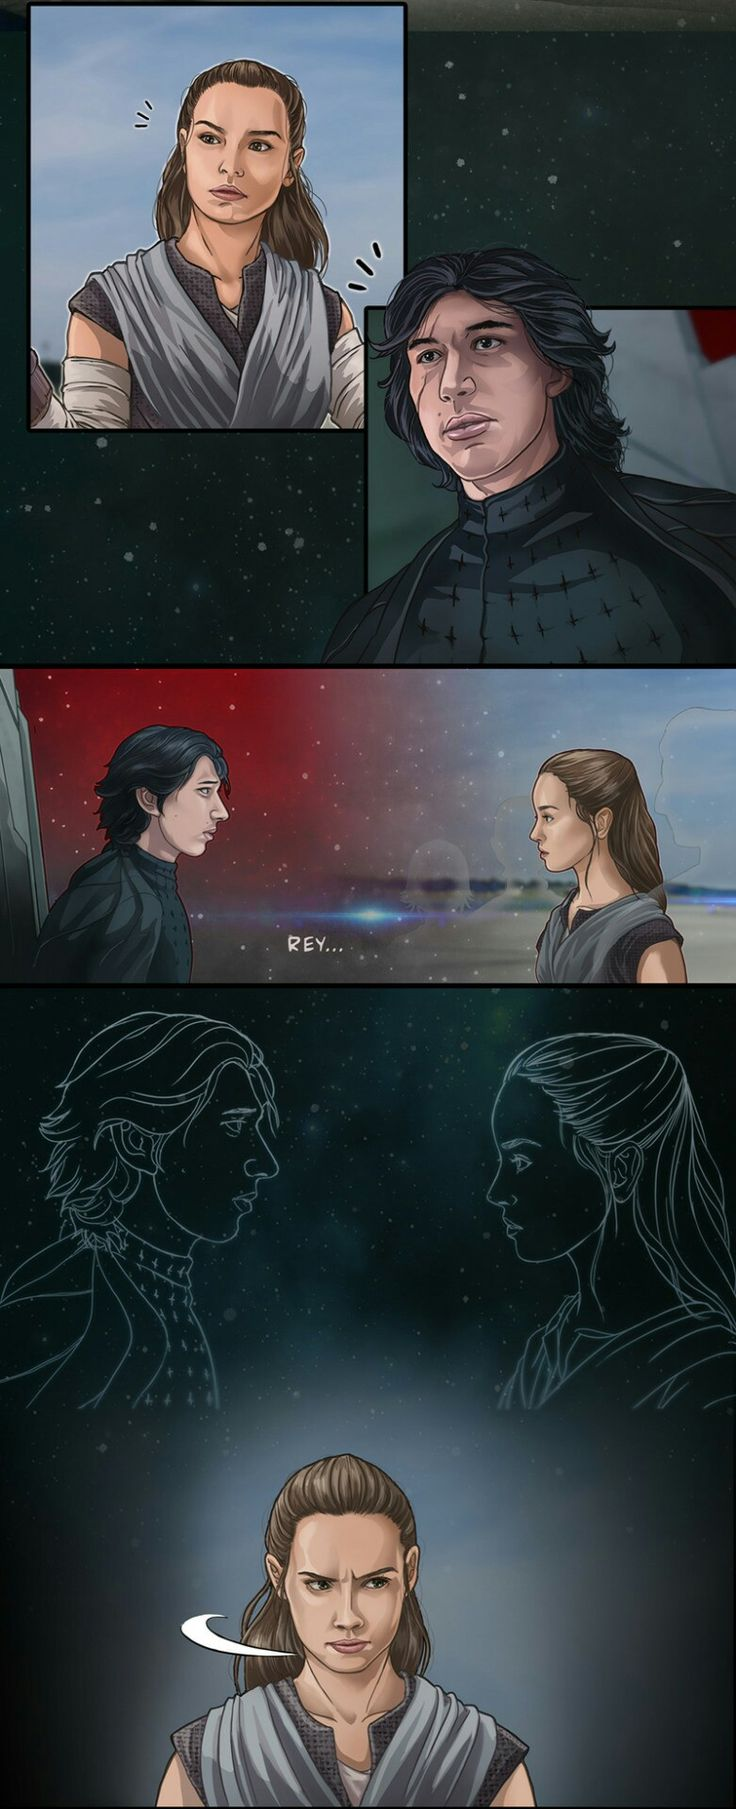 Rey and Kylo connected by the force